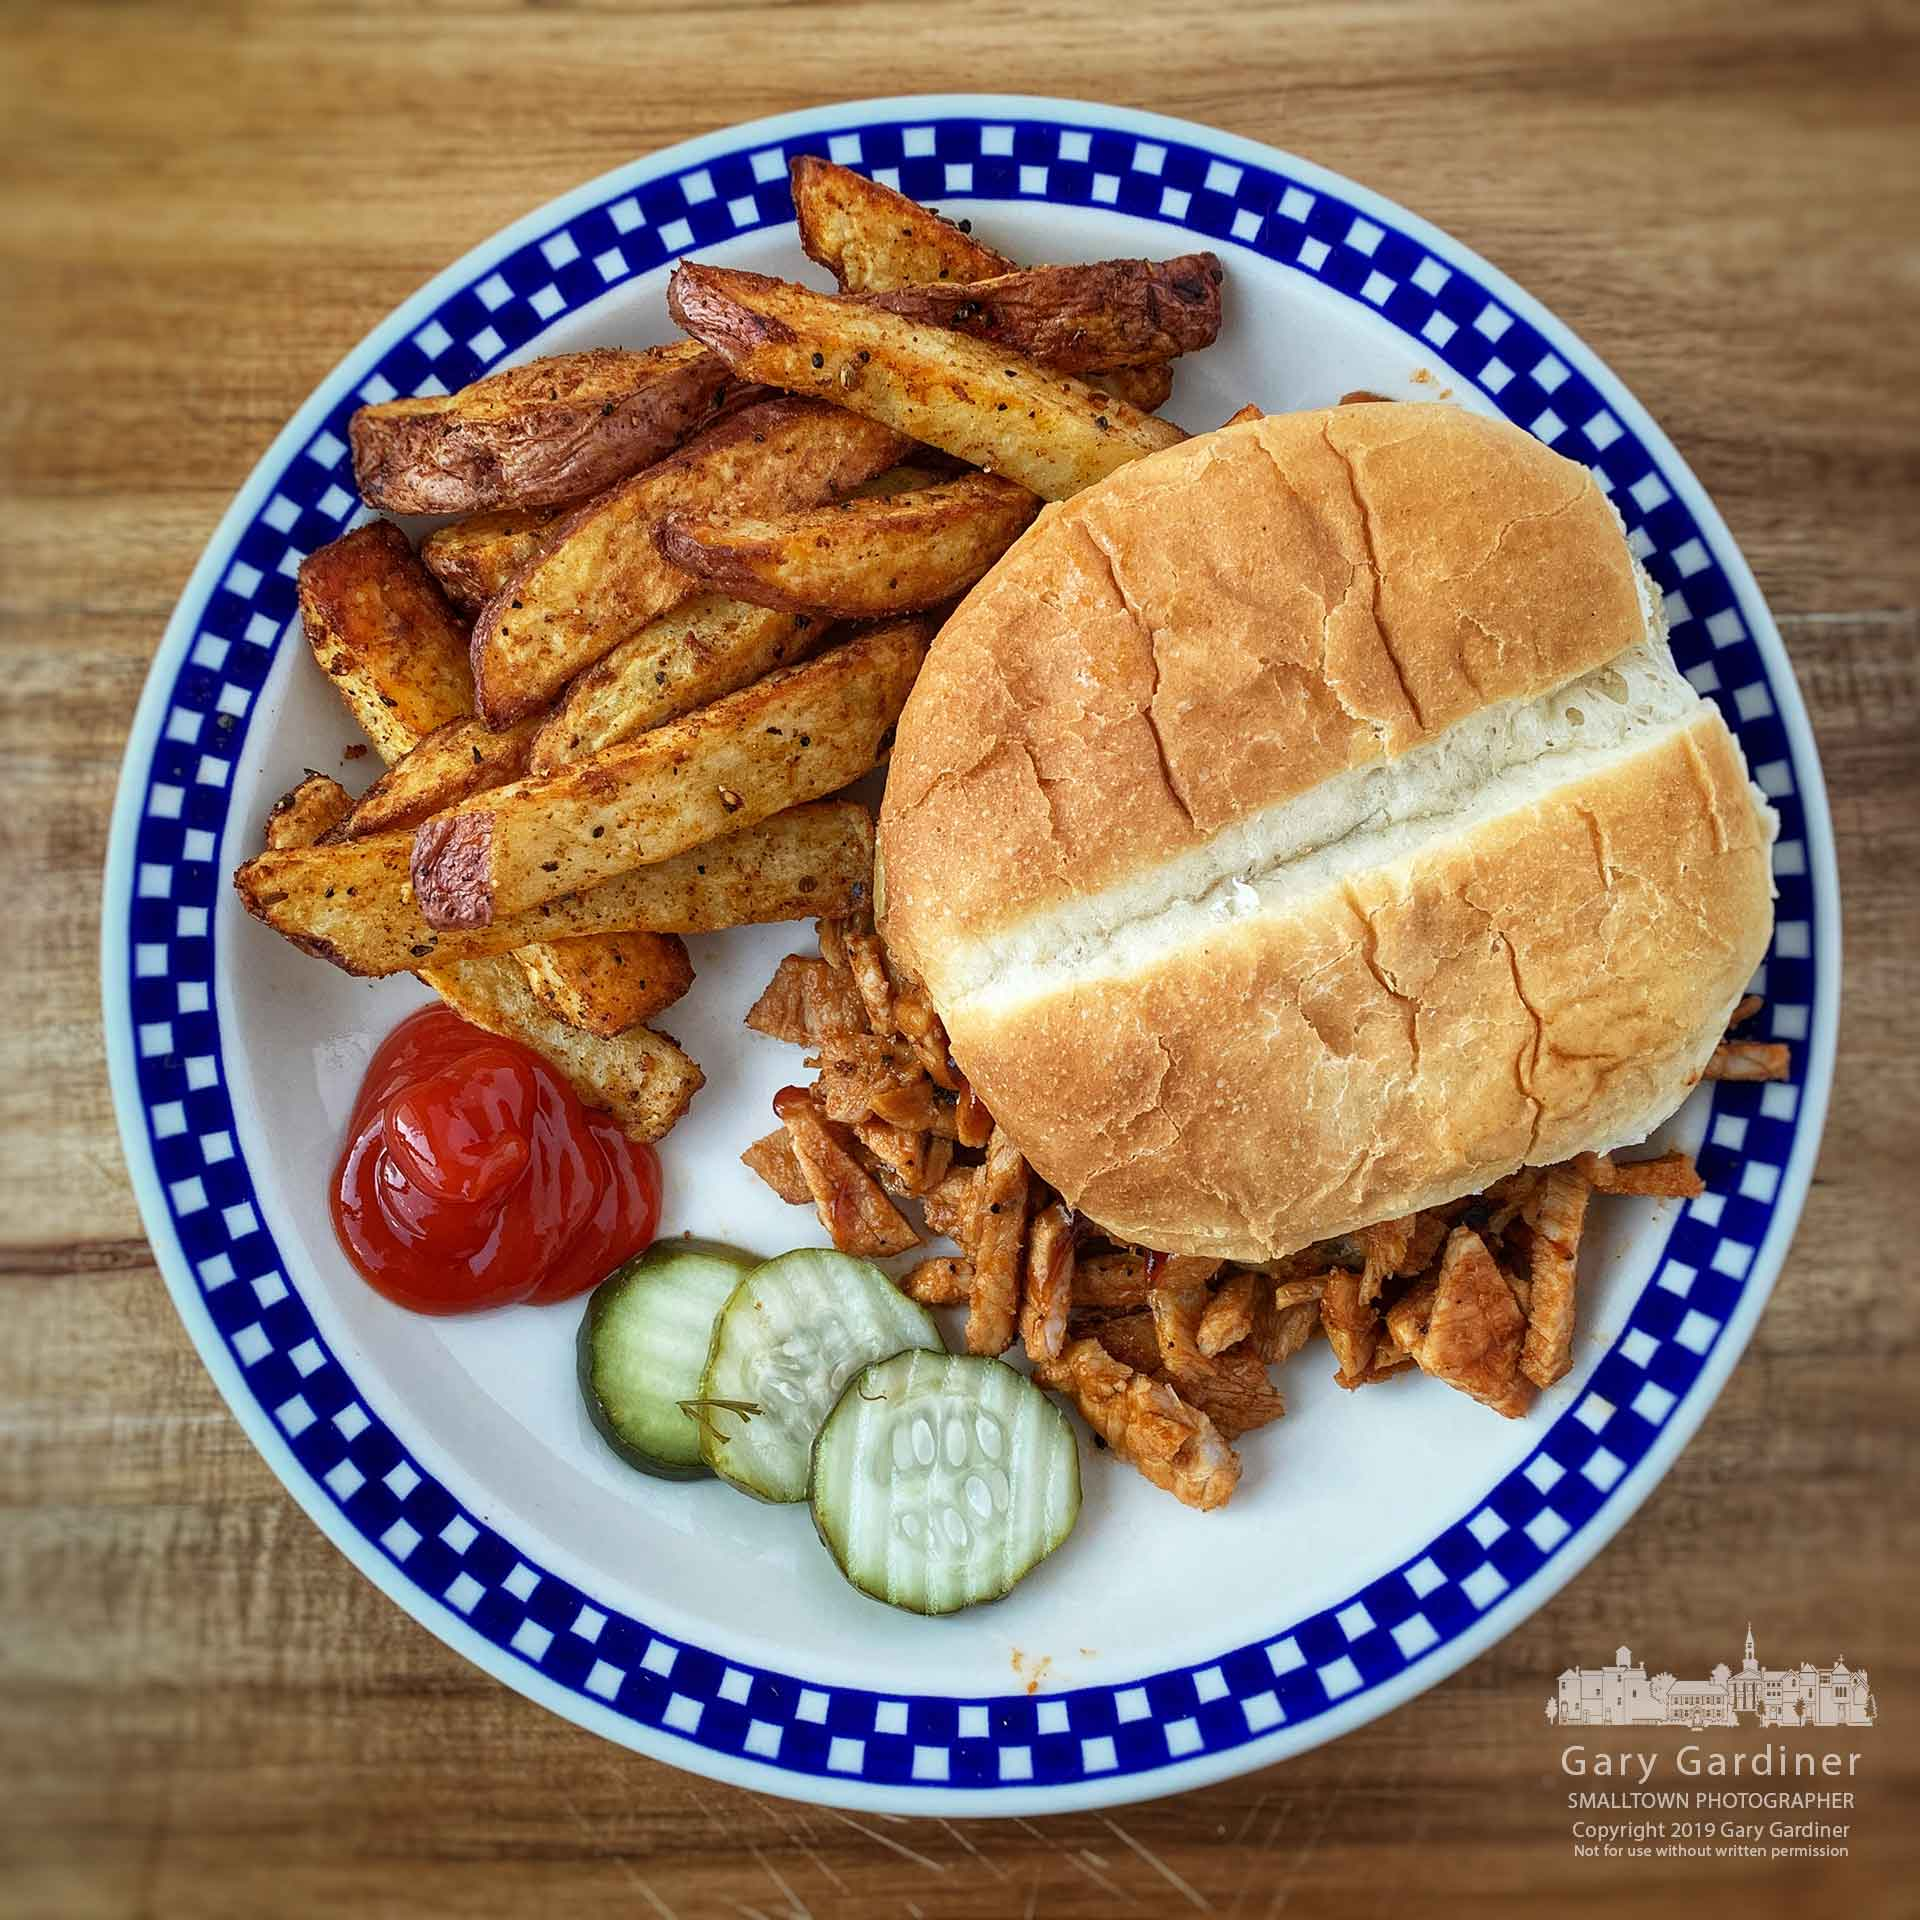 A dinner of BBQ leftover sliced and shredded pork roast, air-fried potatoes, garlic dill pickles, and sourdough bun. My Final Photo for Feb. 24, 2019.